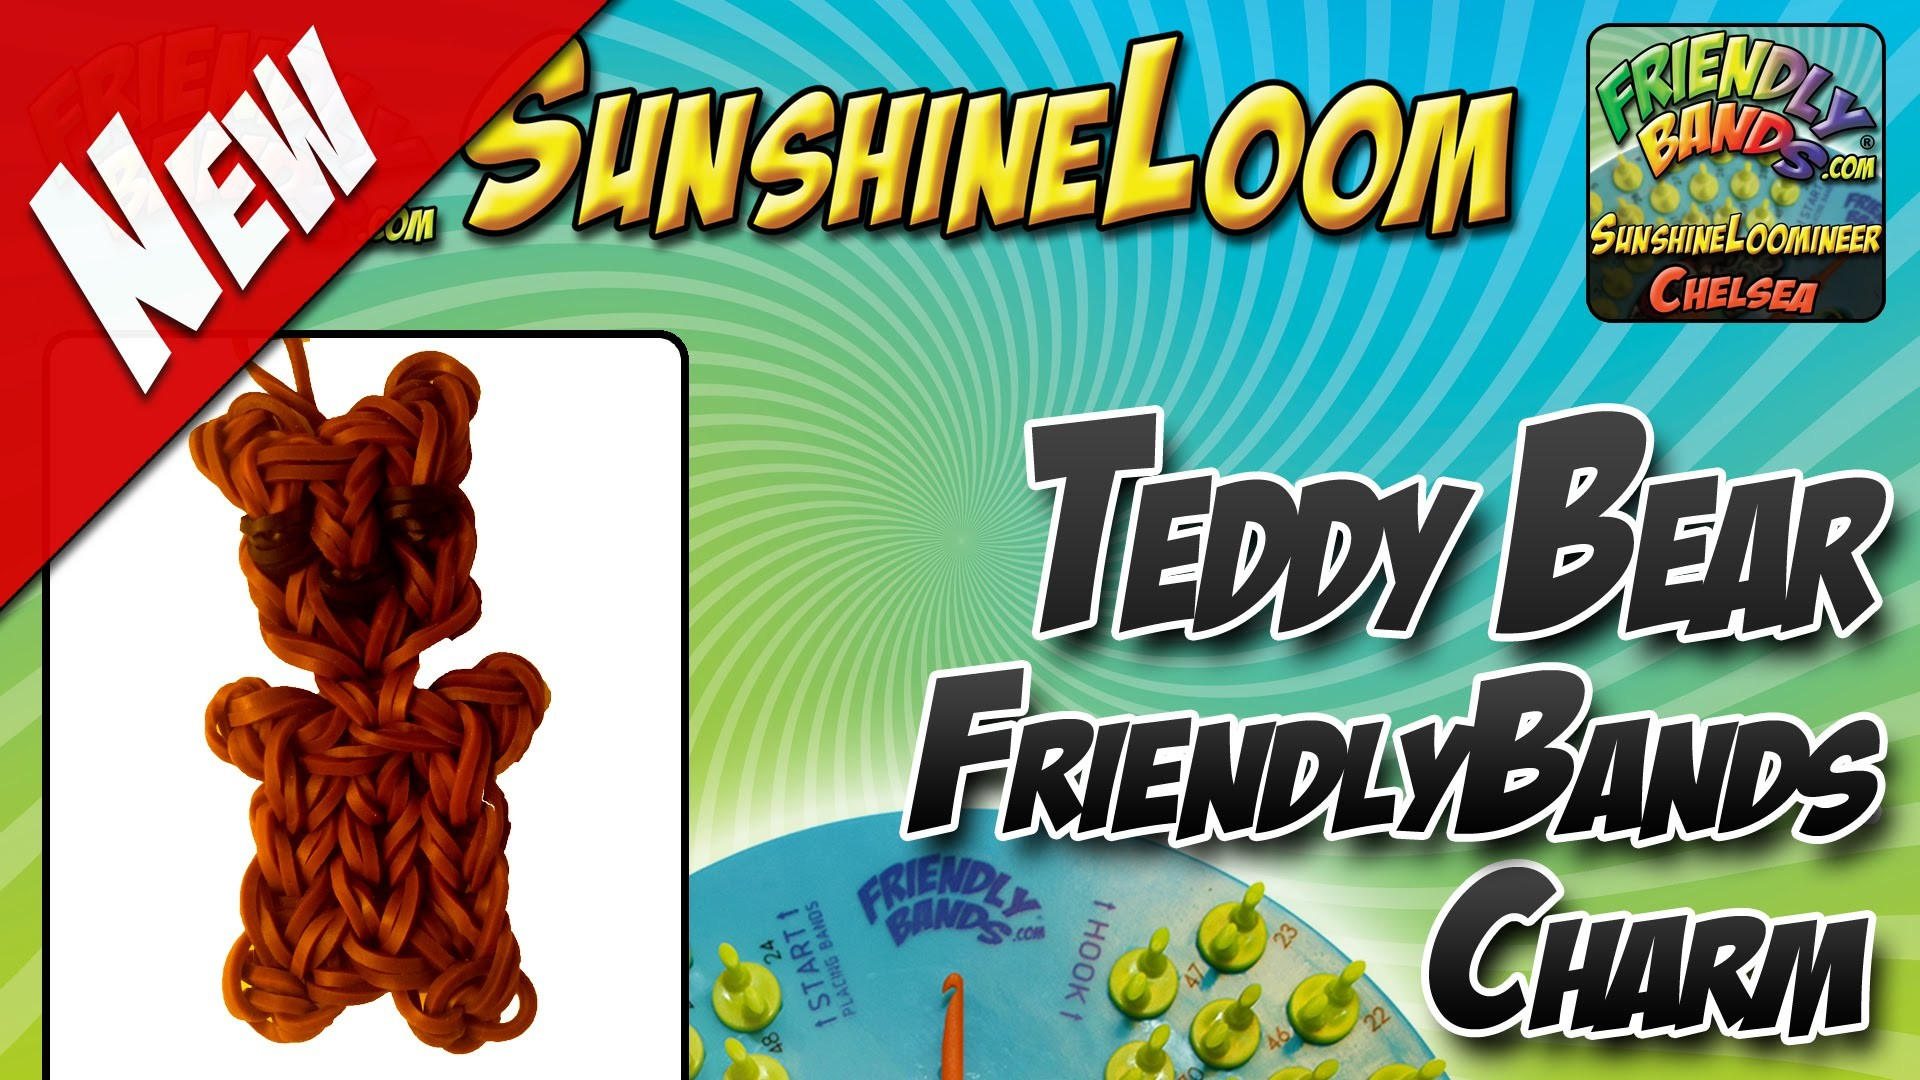 How to Make a FriendlyBands SunshineLoom - Teddy Bear Charm Tutorial